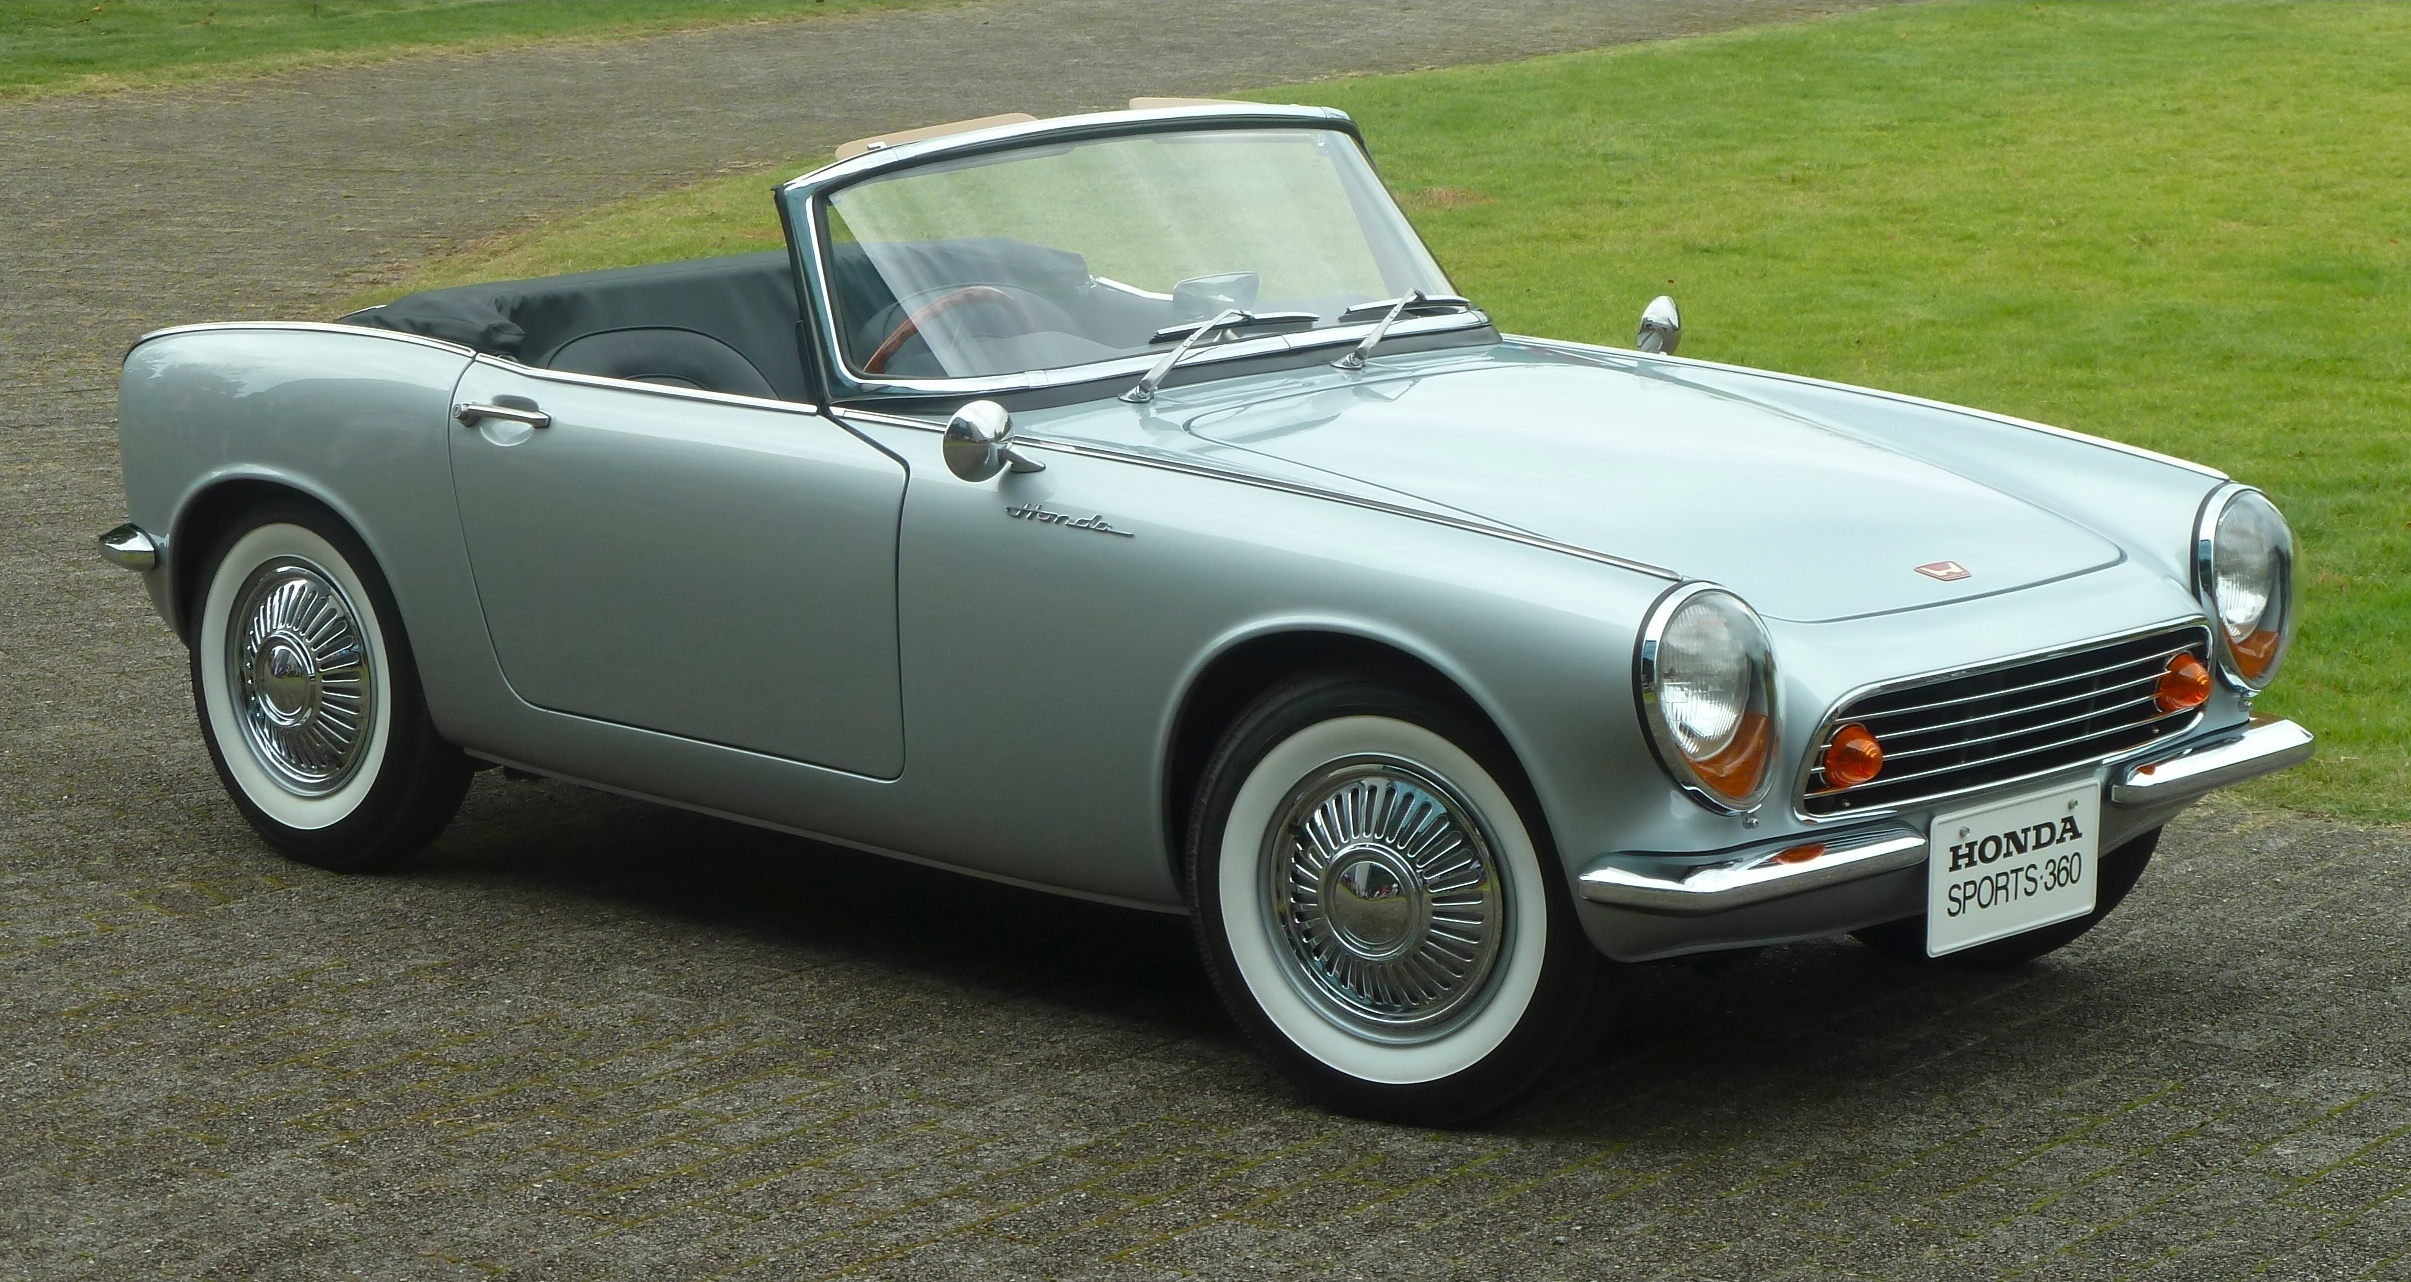 1000+ Images About Honda S600's & S800's On Pinterest